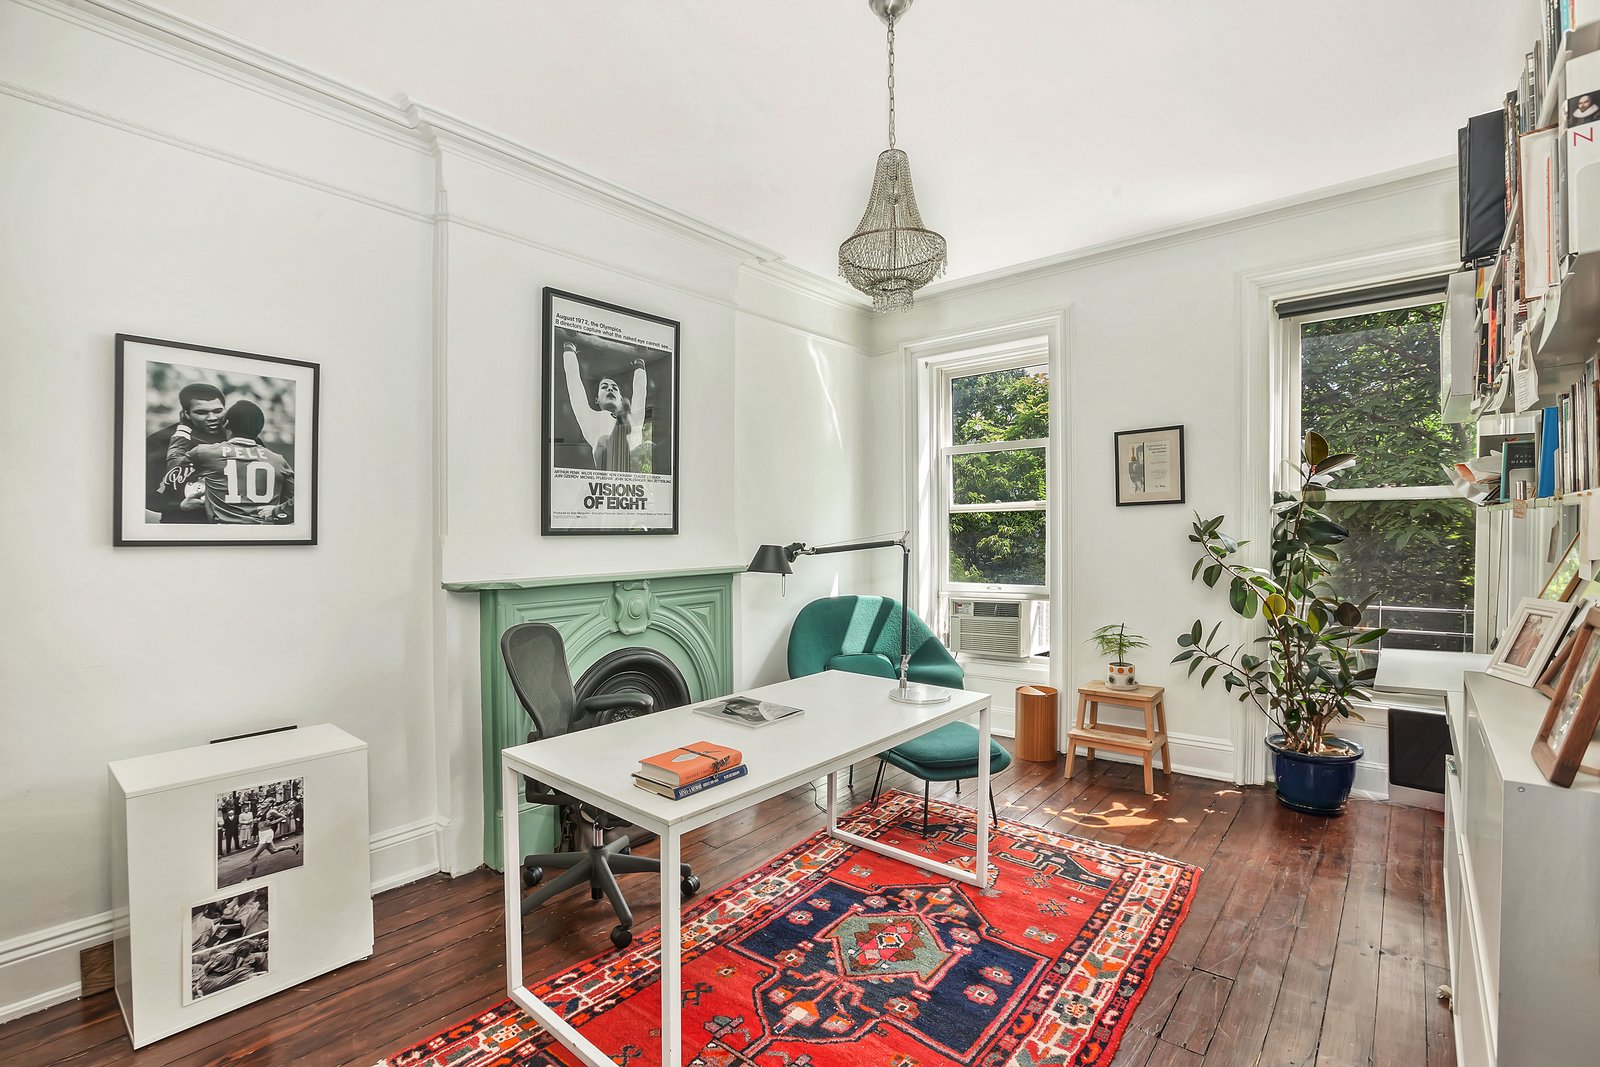 Maggie Gyllenhaal and Peter Sarsgaard's Park Slope Townhouse office